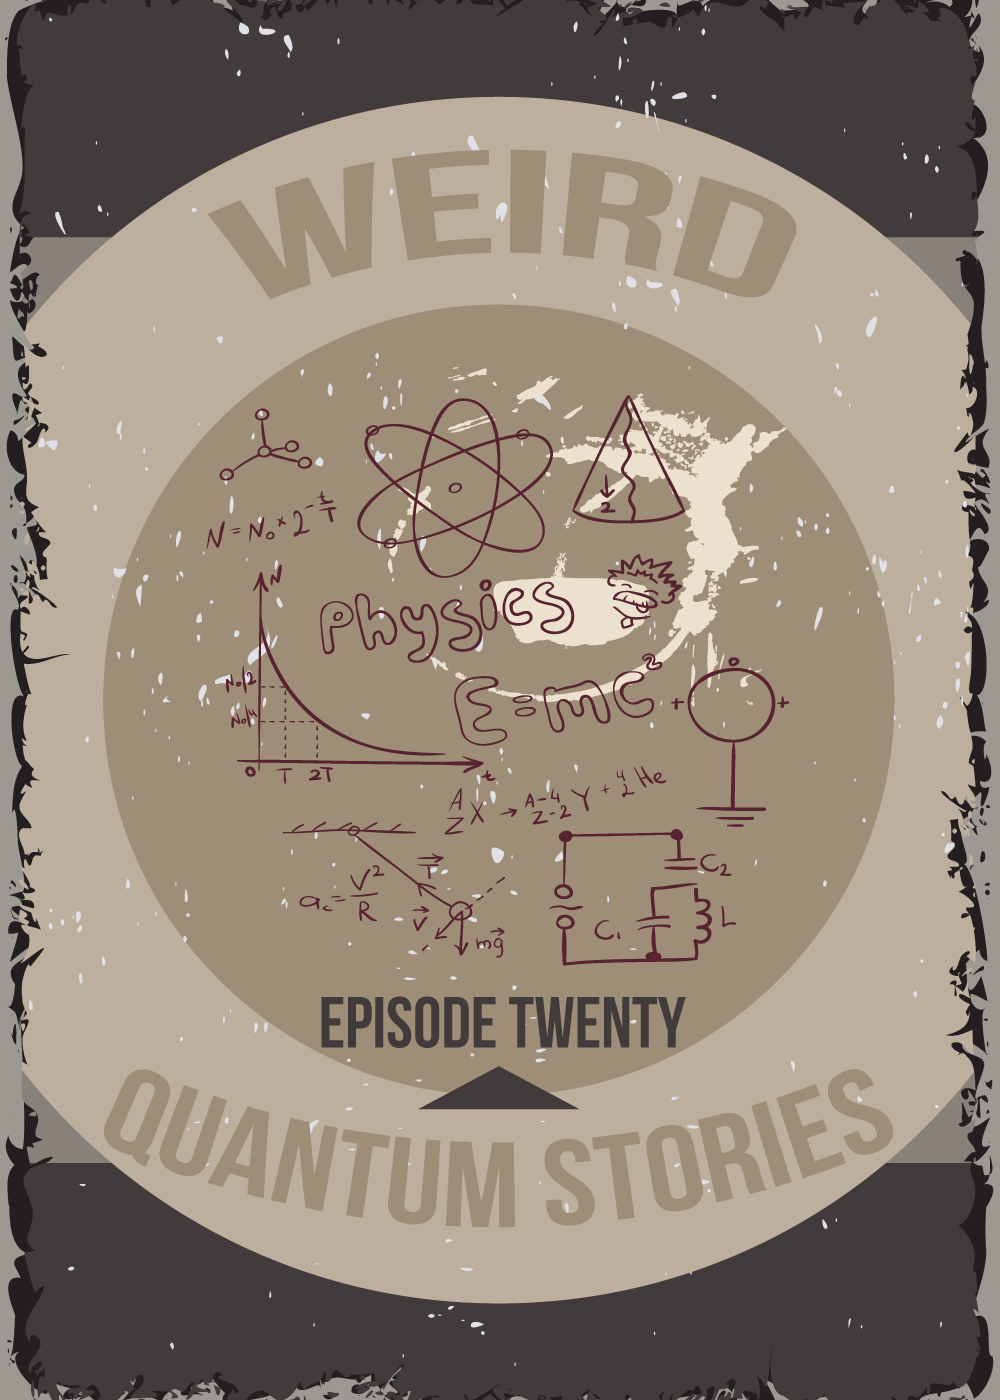 EP 020 – Weird Quantum Stories